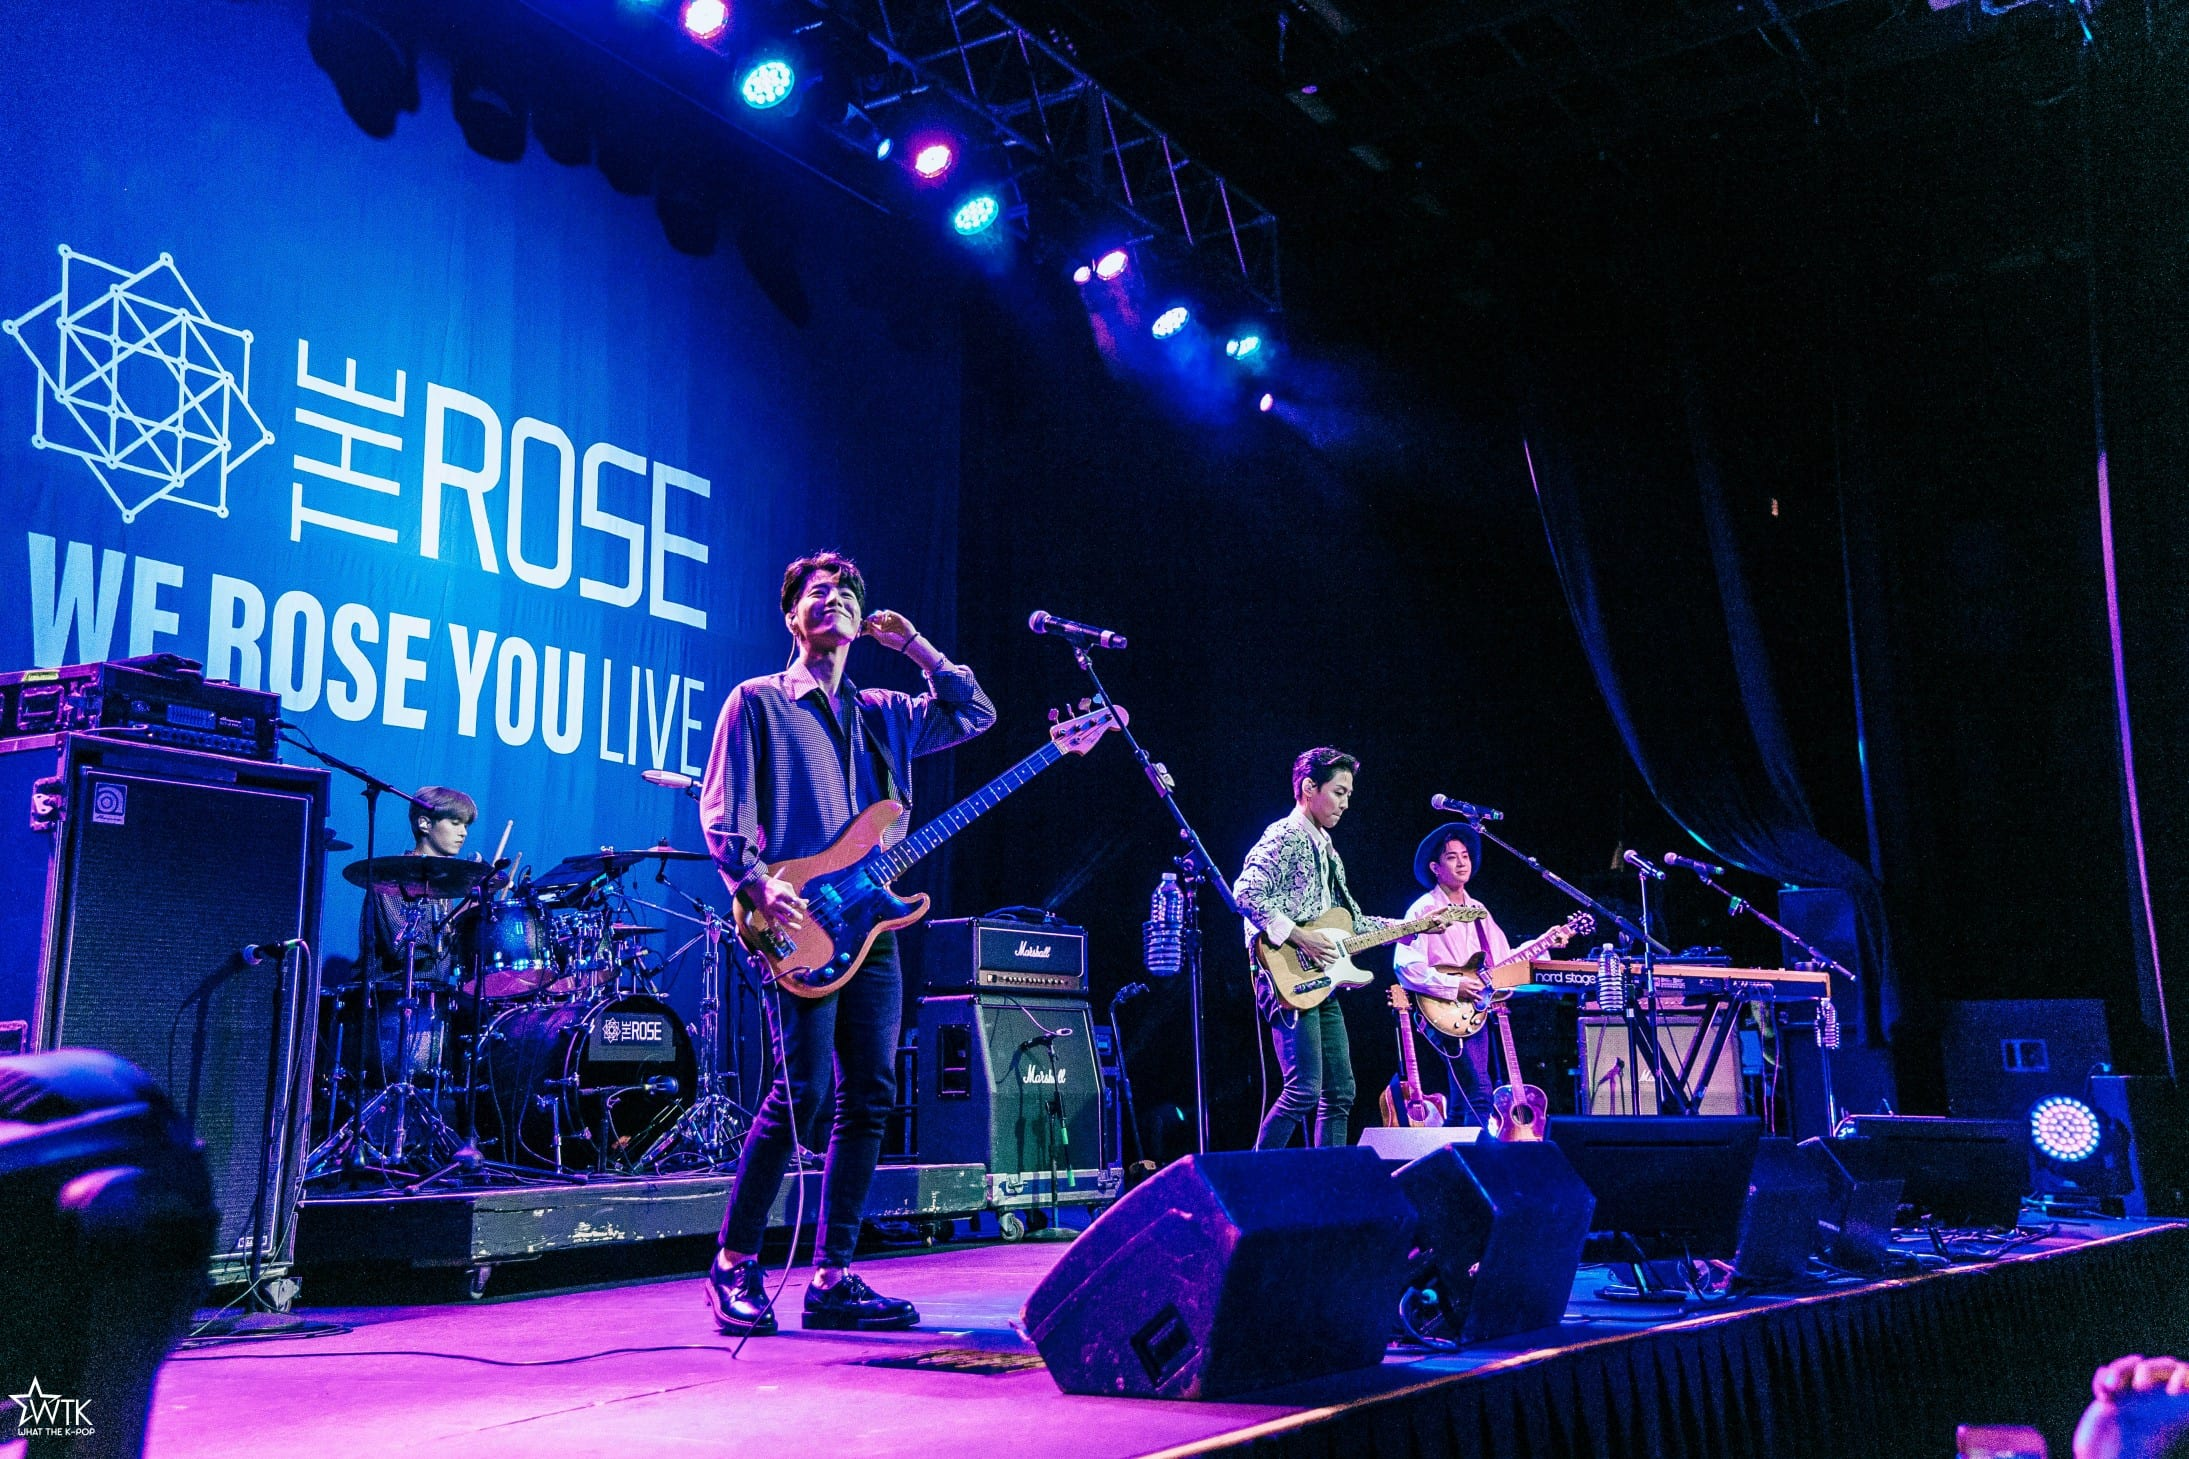 PHOTO GALLERY: The Rose Shows Why They're Korea's Next Biggest Band With Amazing Atlanta Show